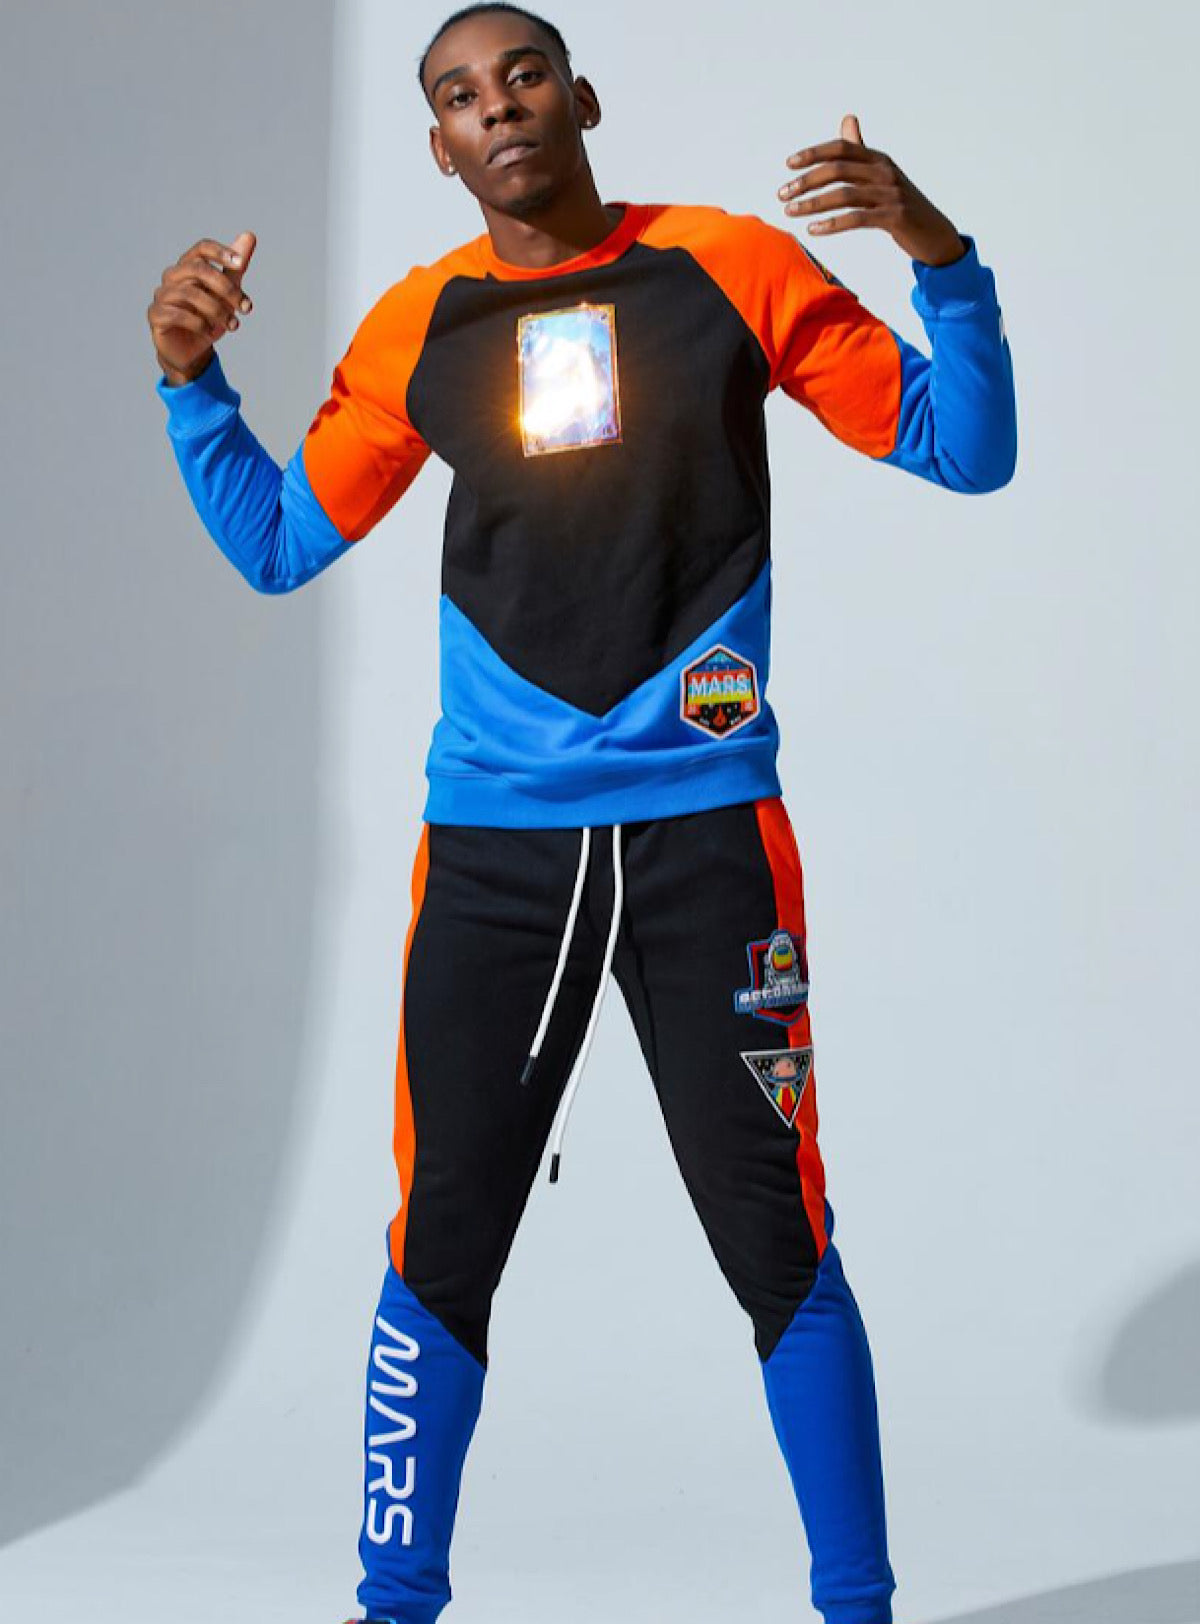 Fifh Loop Sweatsuit - Mars - Black With Orange and Royal - FLC011